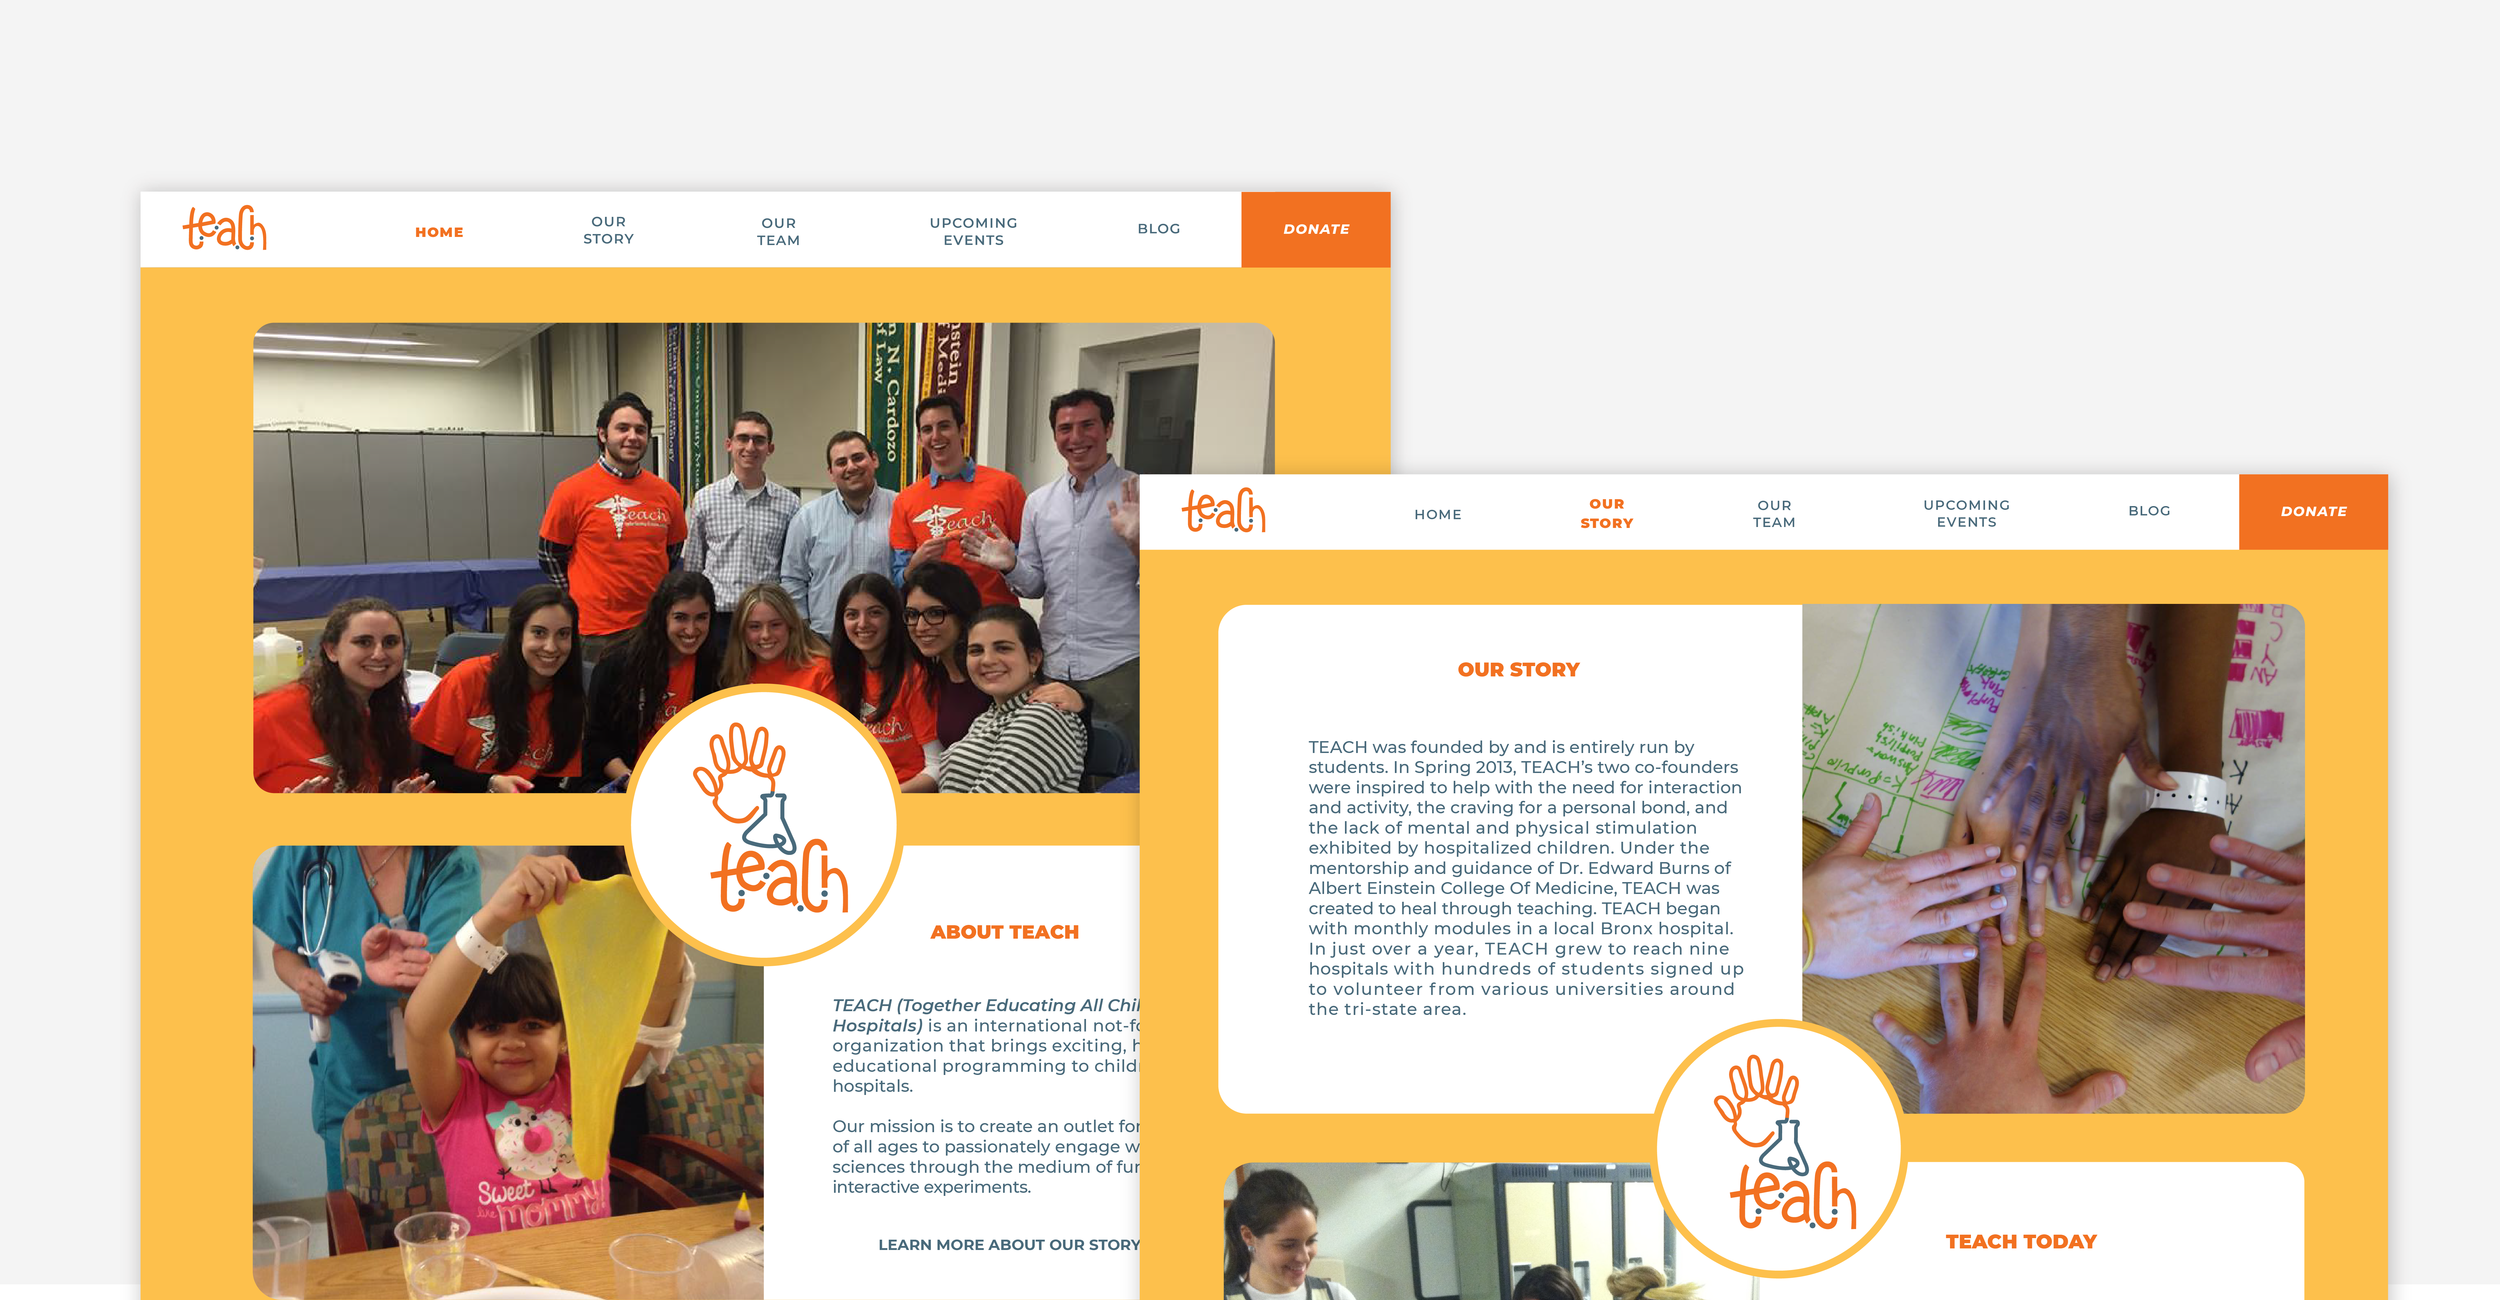 TeachLayout_04_Home&StoryStill.png